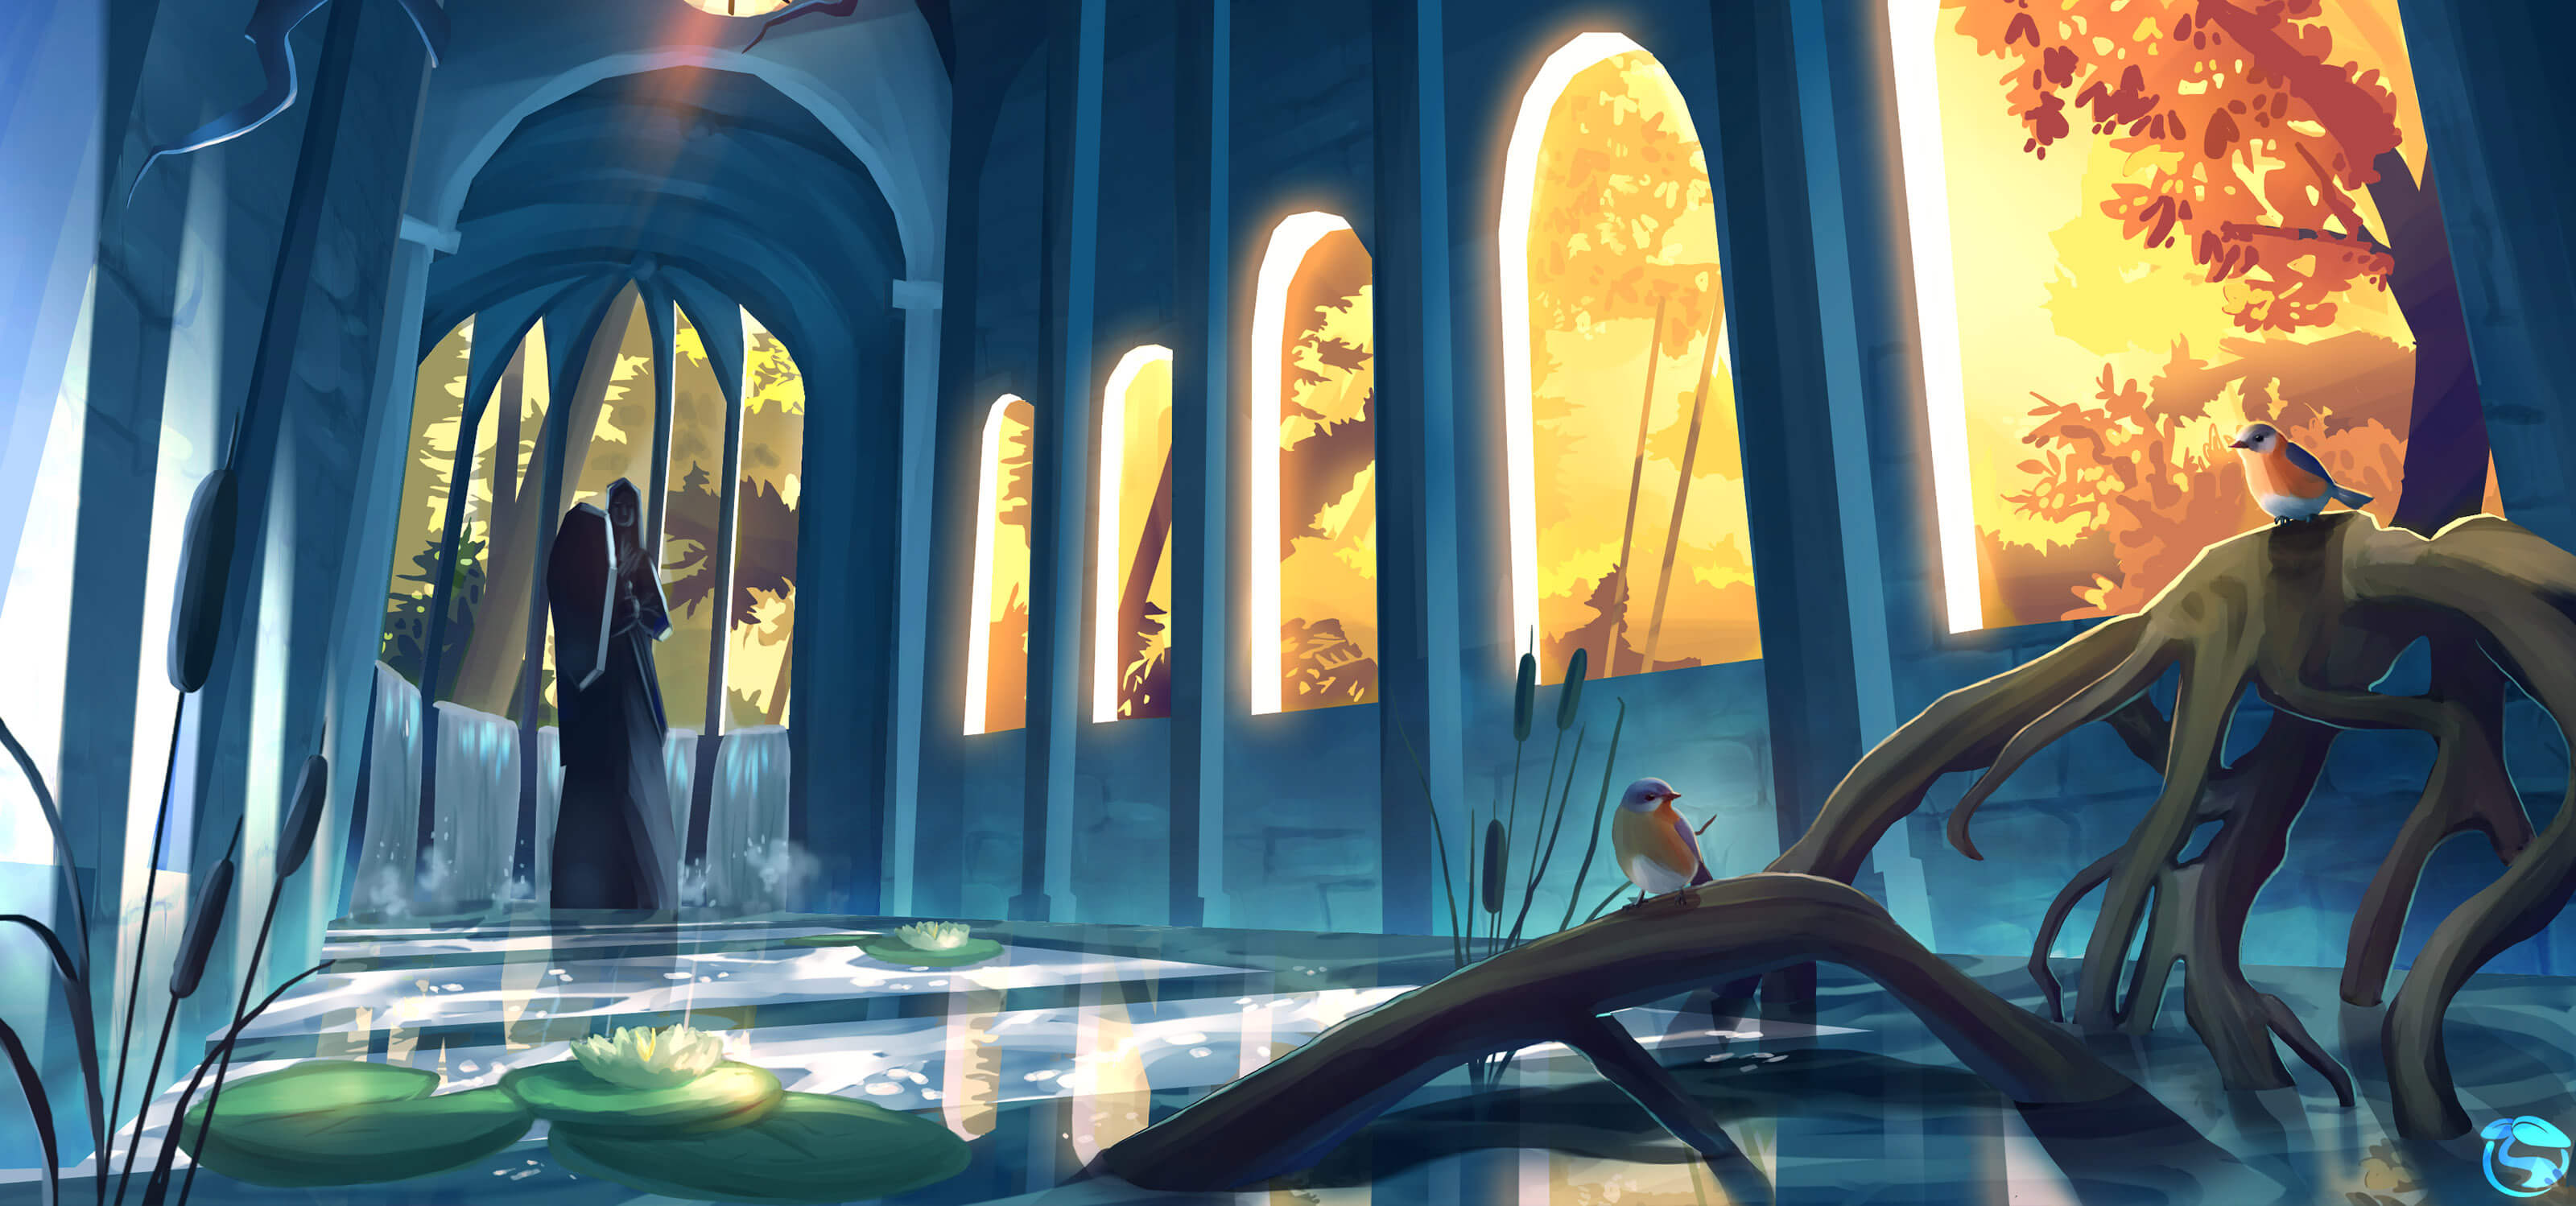 Digital painting of a statue in an open building at sunset, with a pond, lily pads and birds in the foreground